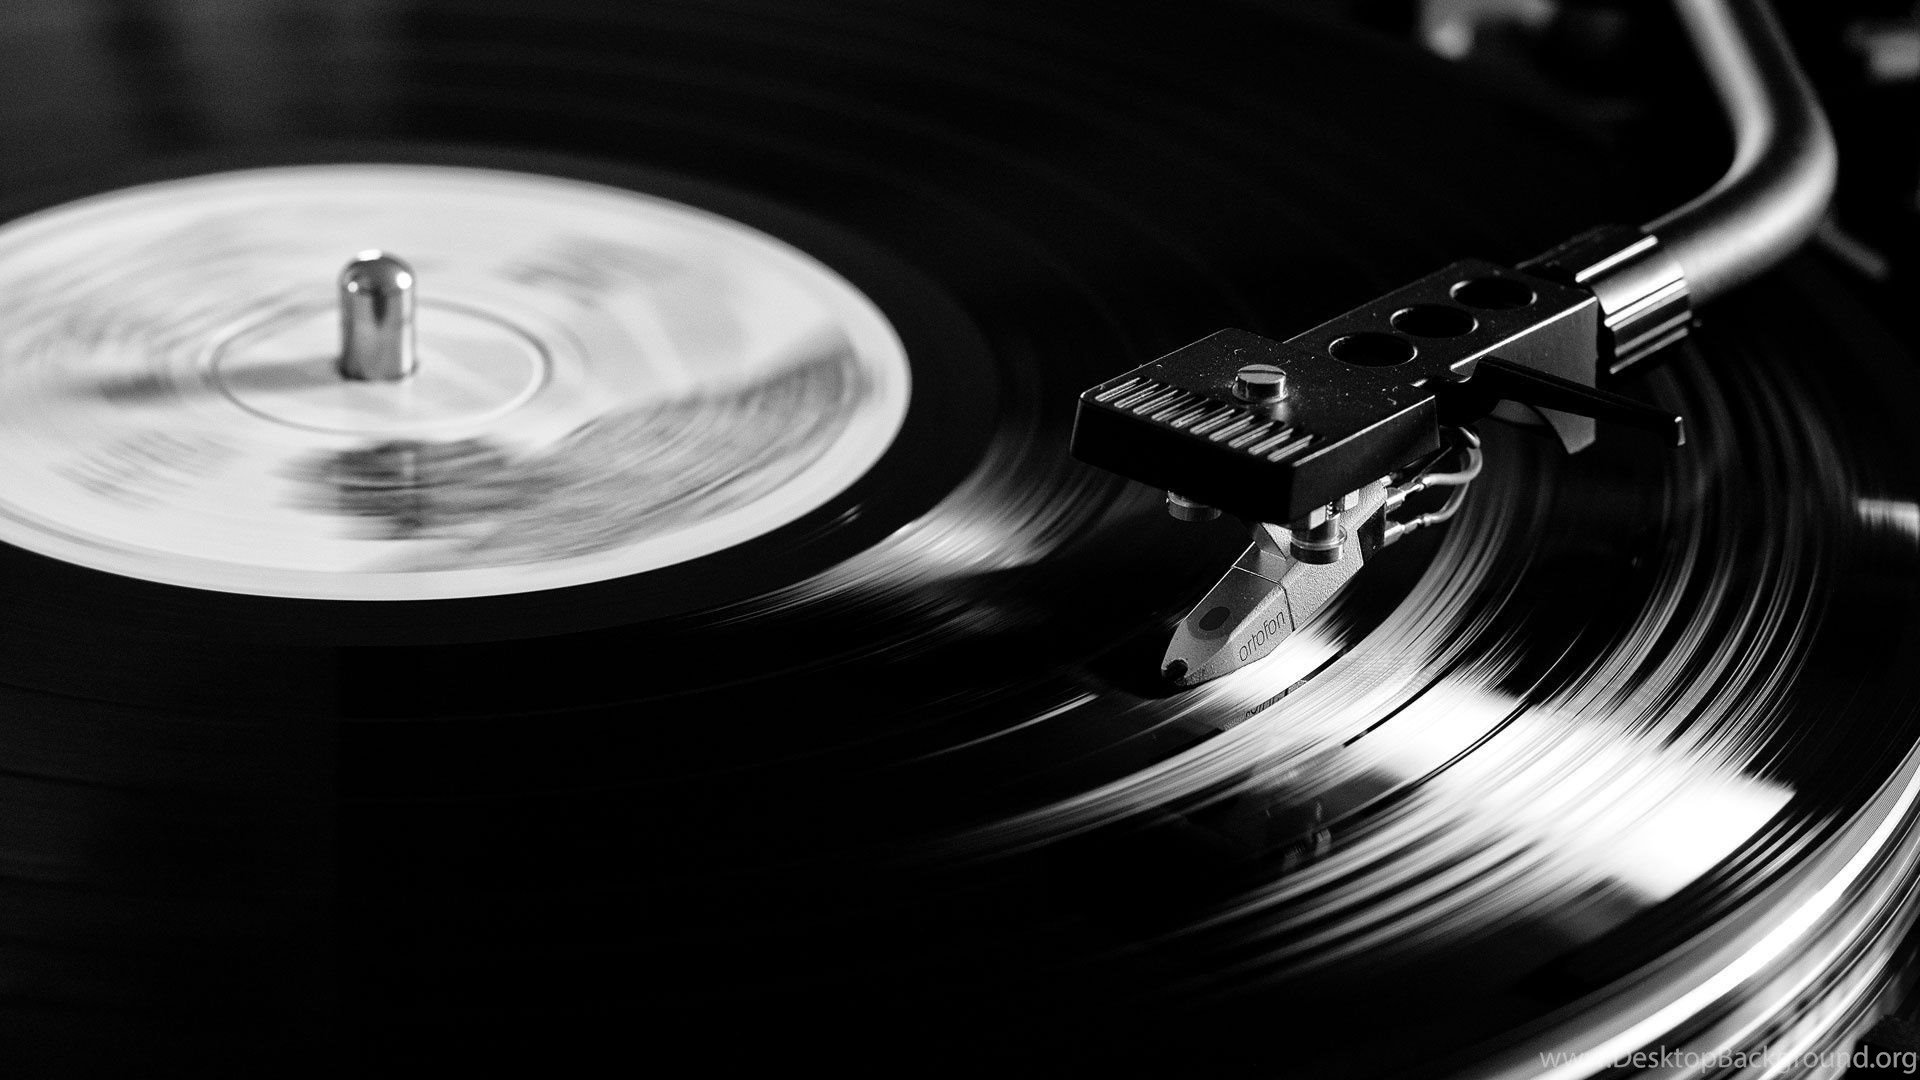 Top Vinyl Record Computer Background Images For Pinterest